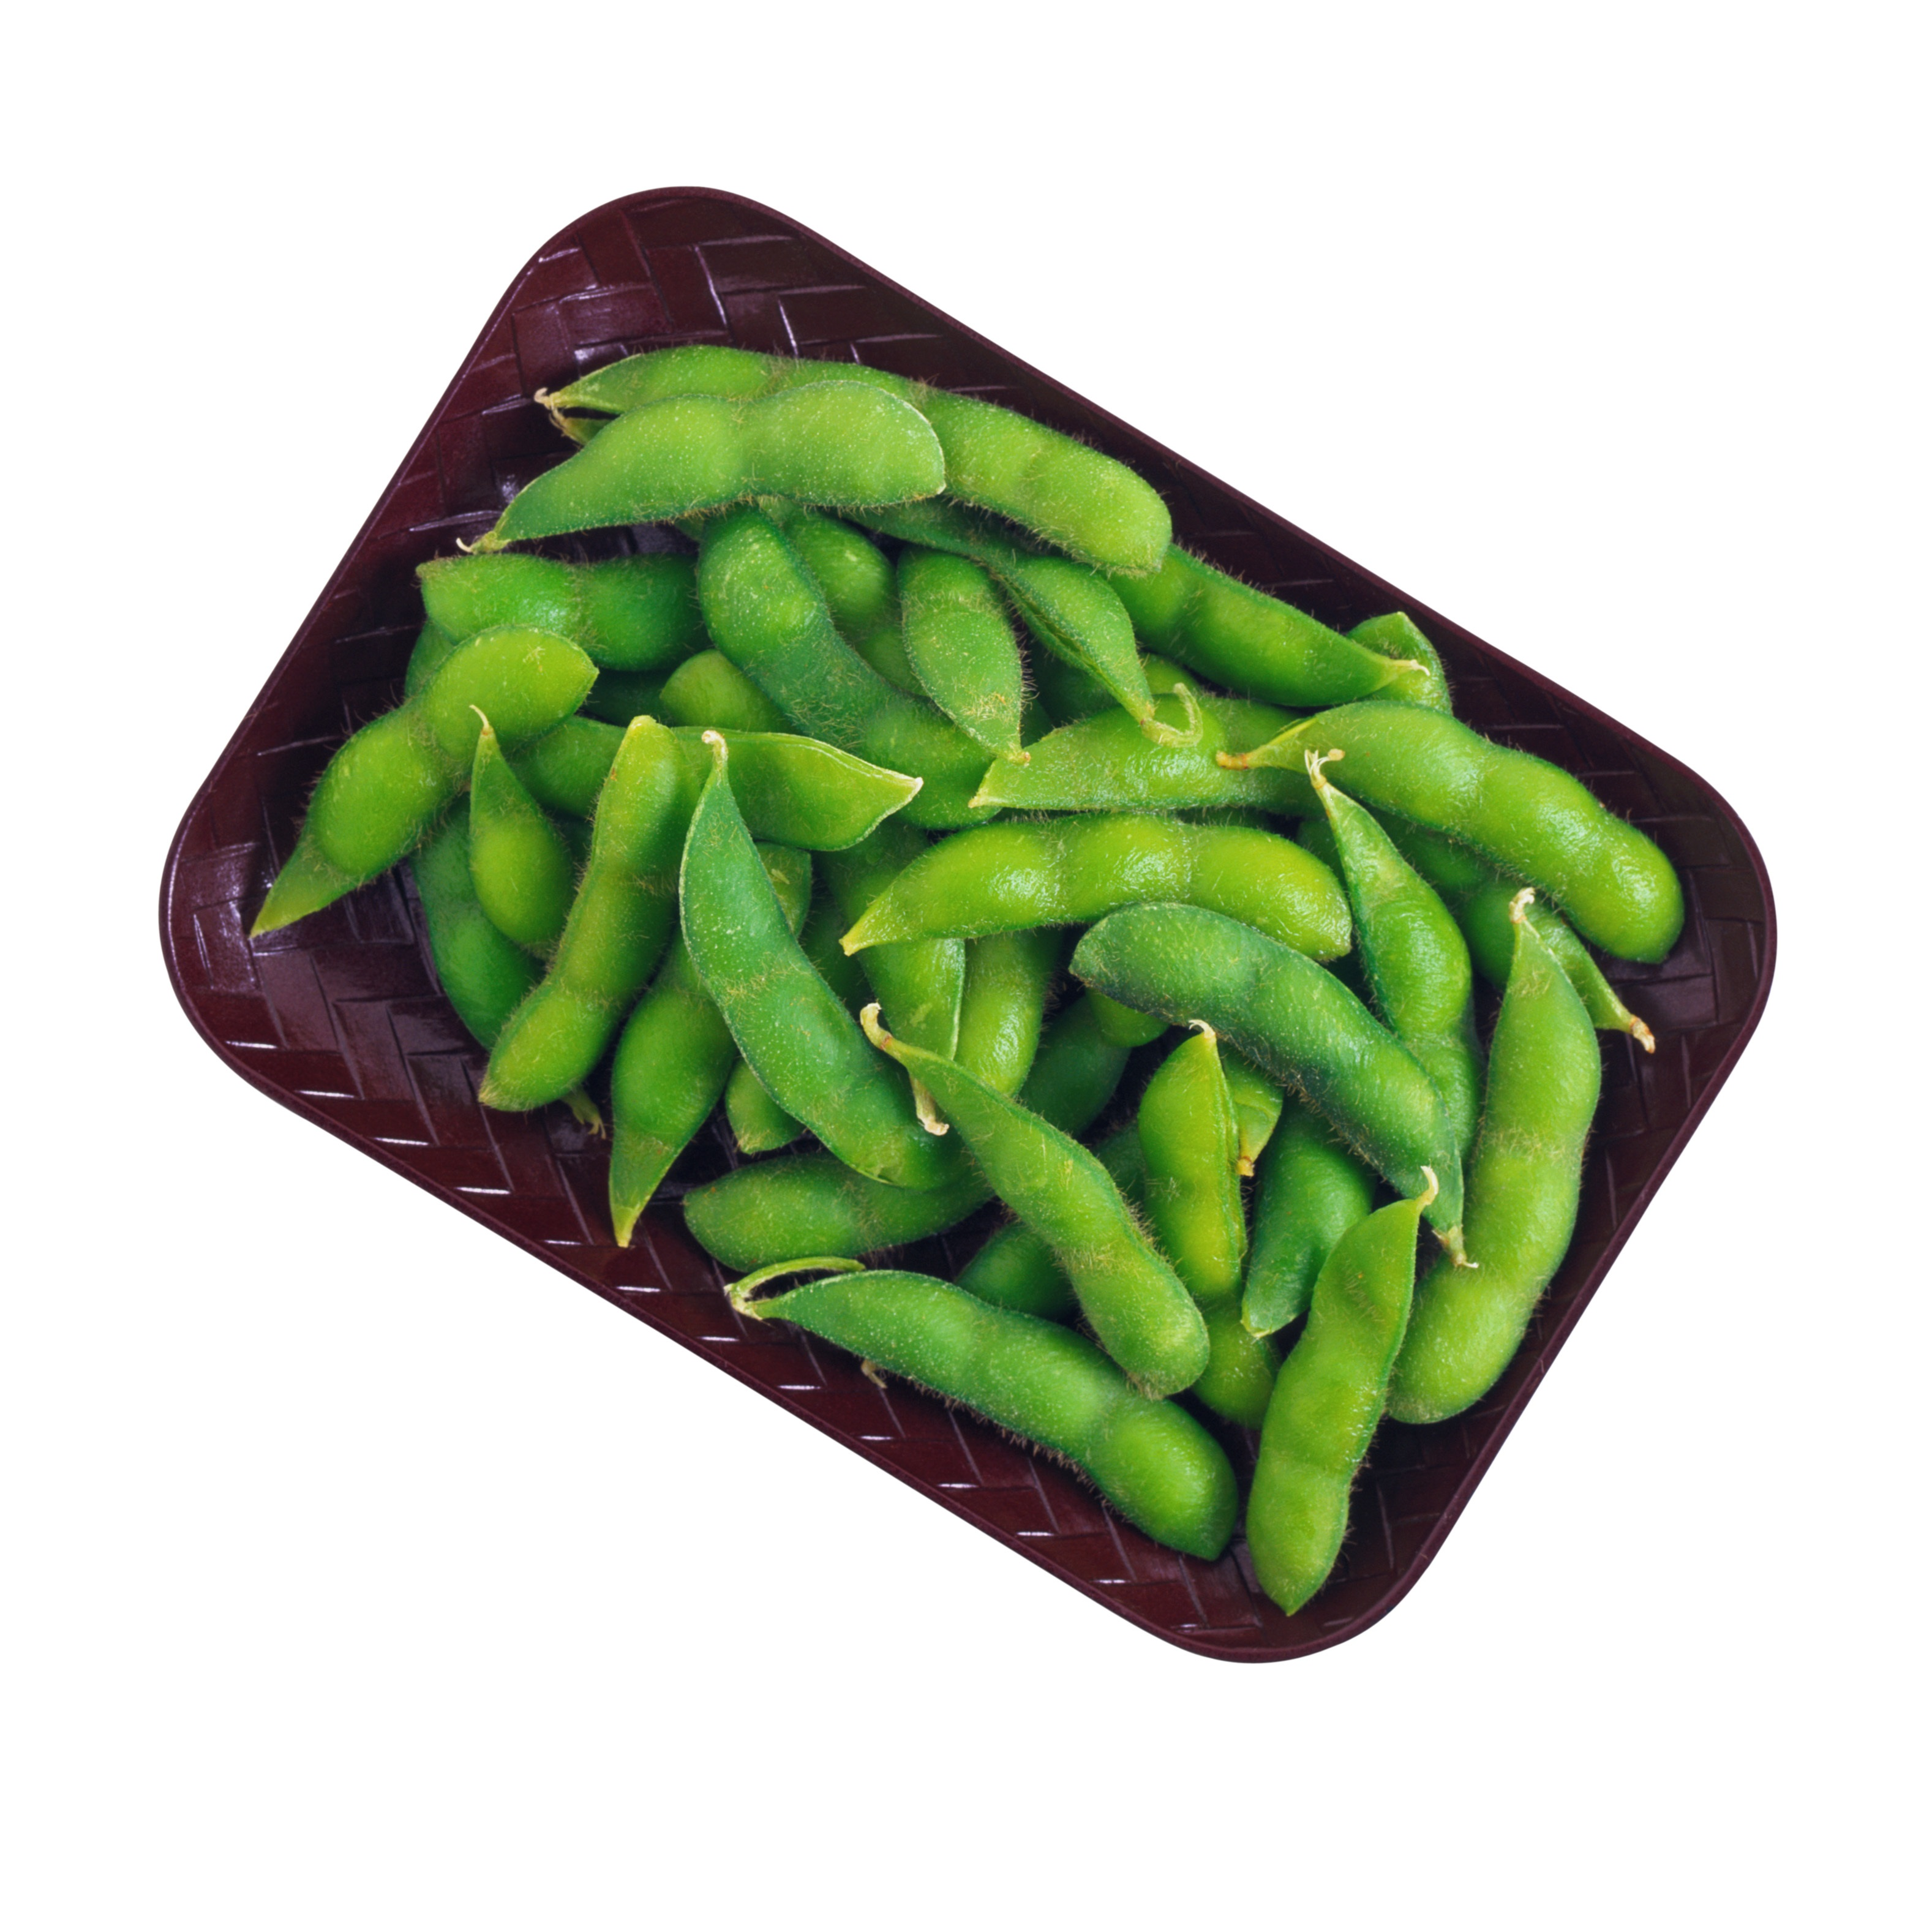 edamame beans are a great evening snack